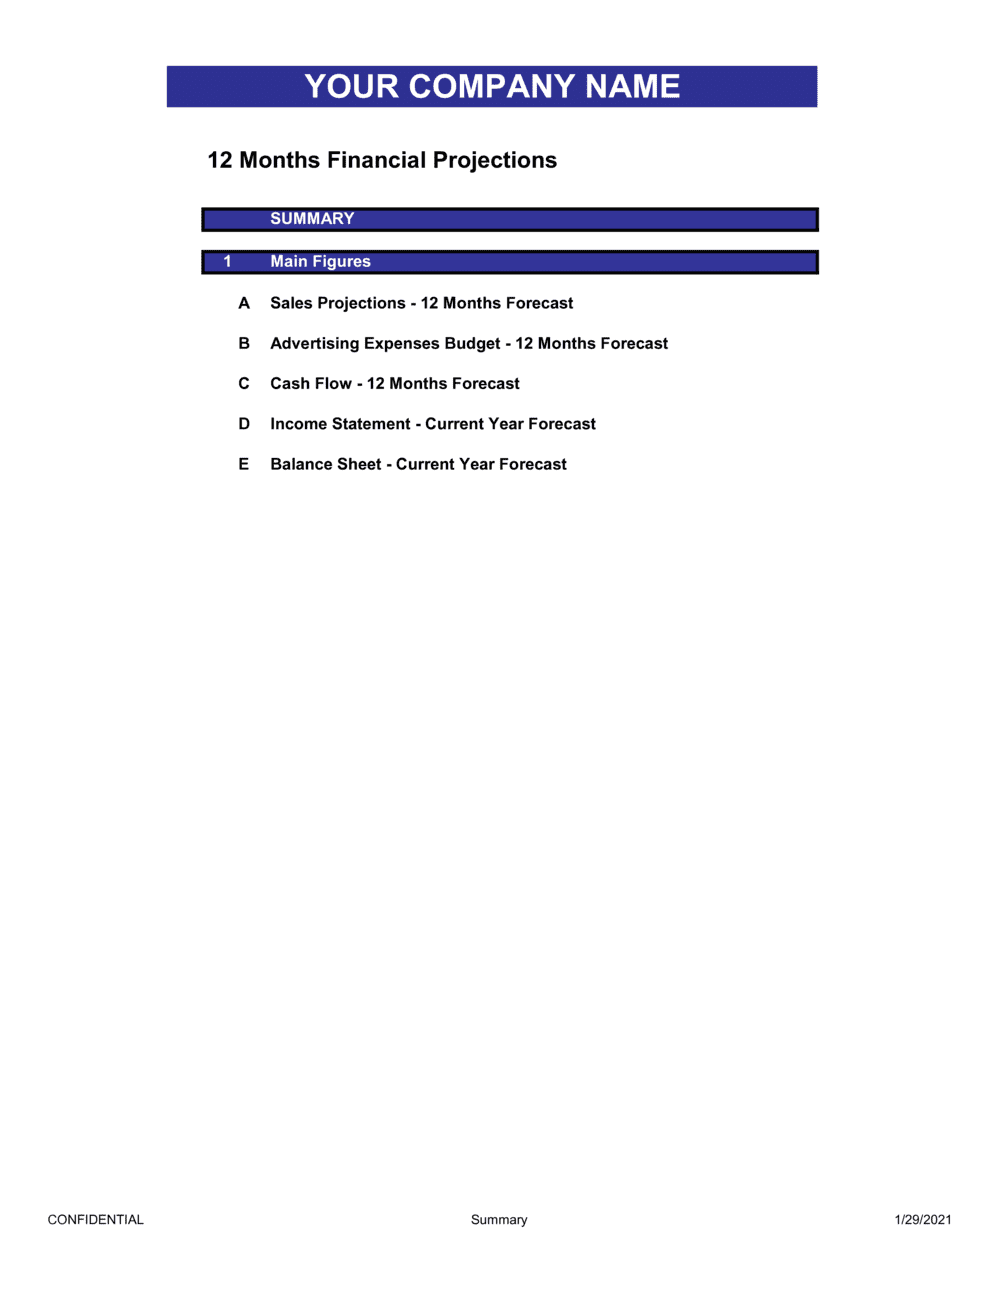 Business-in-a-Box's Financial Report Template